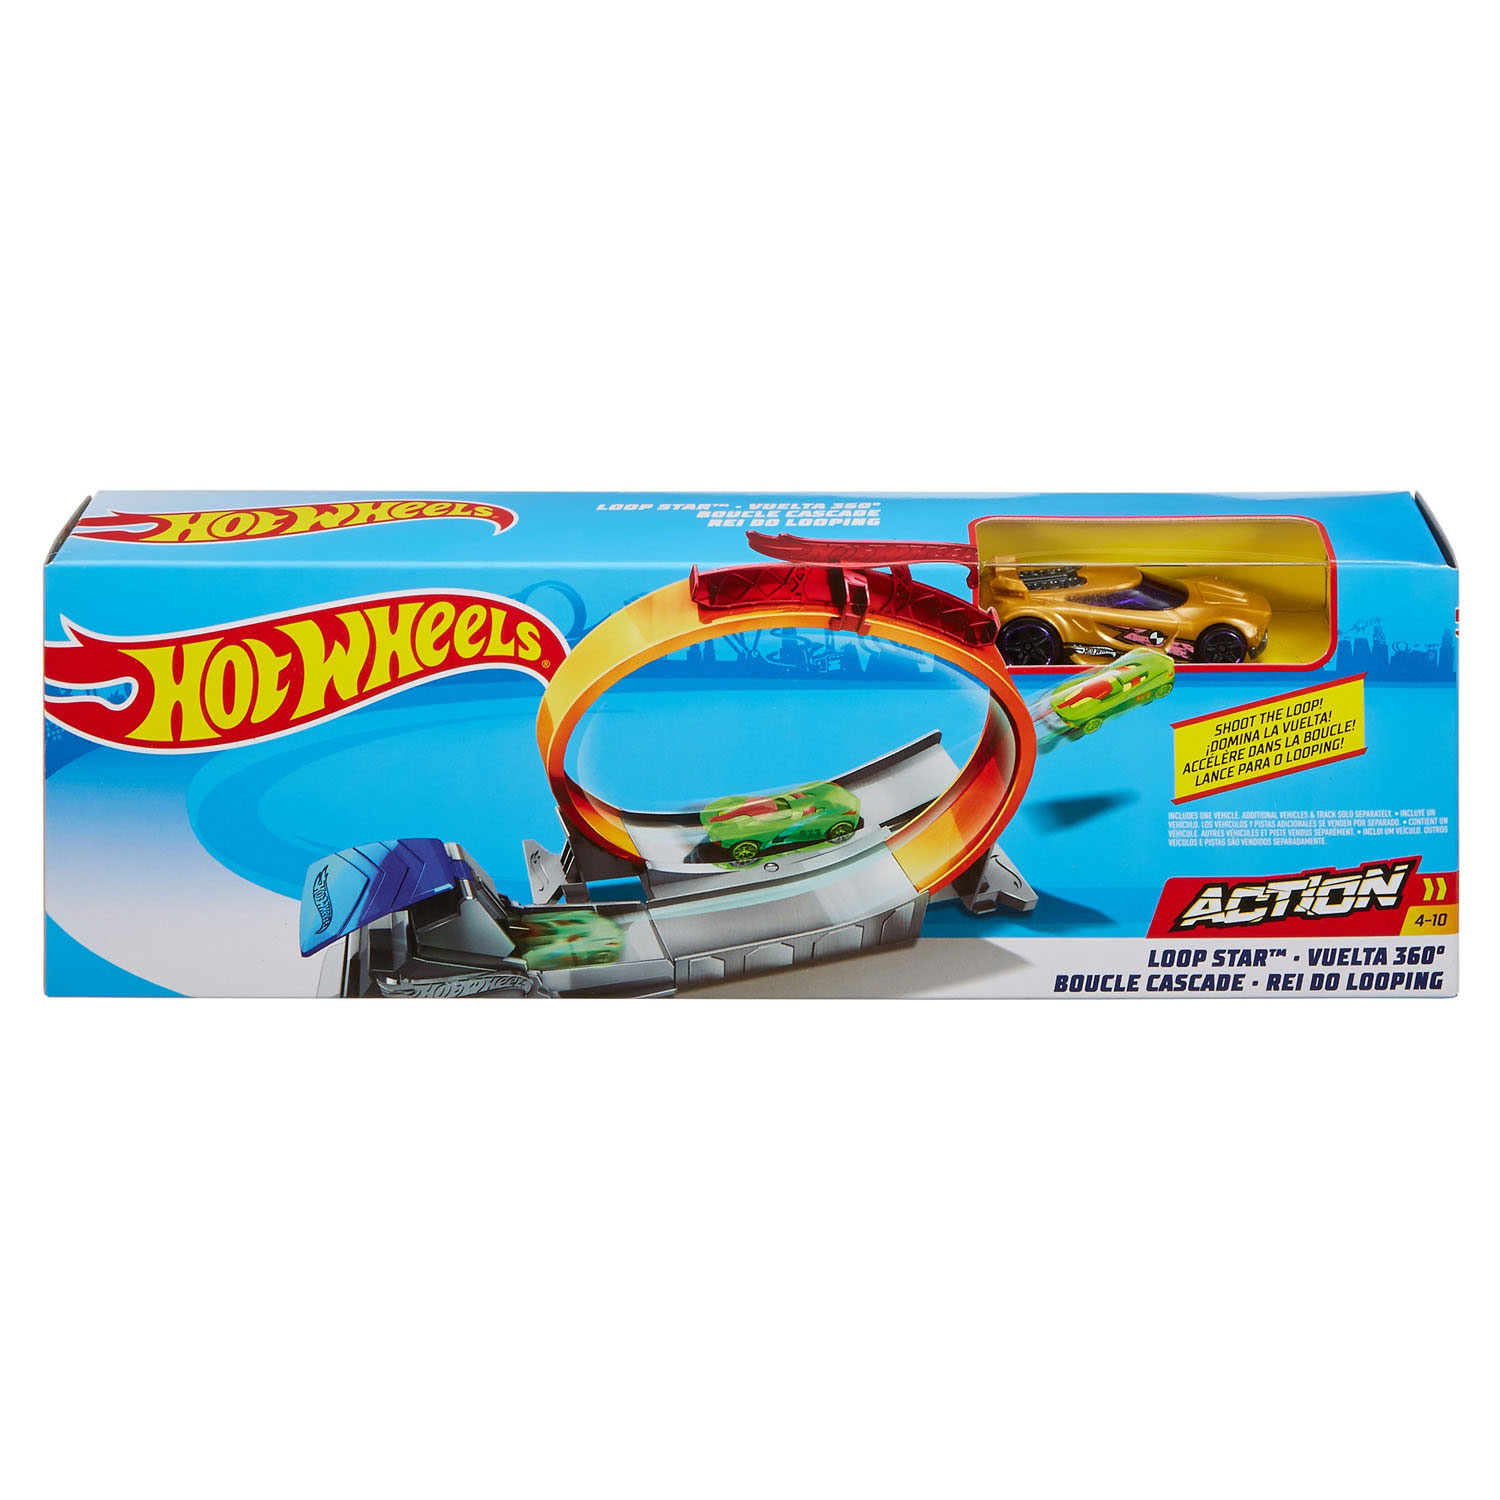 Hot Wheels Classic Stunt Set - Loop Star